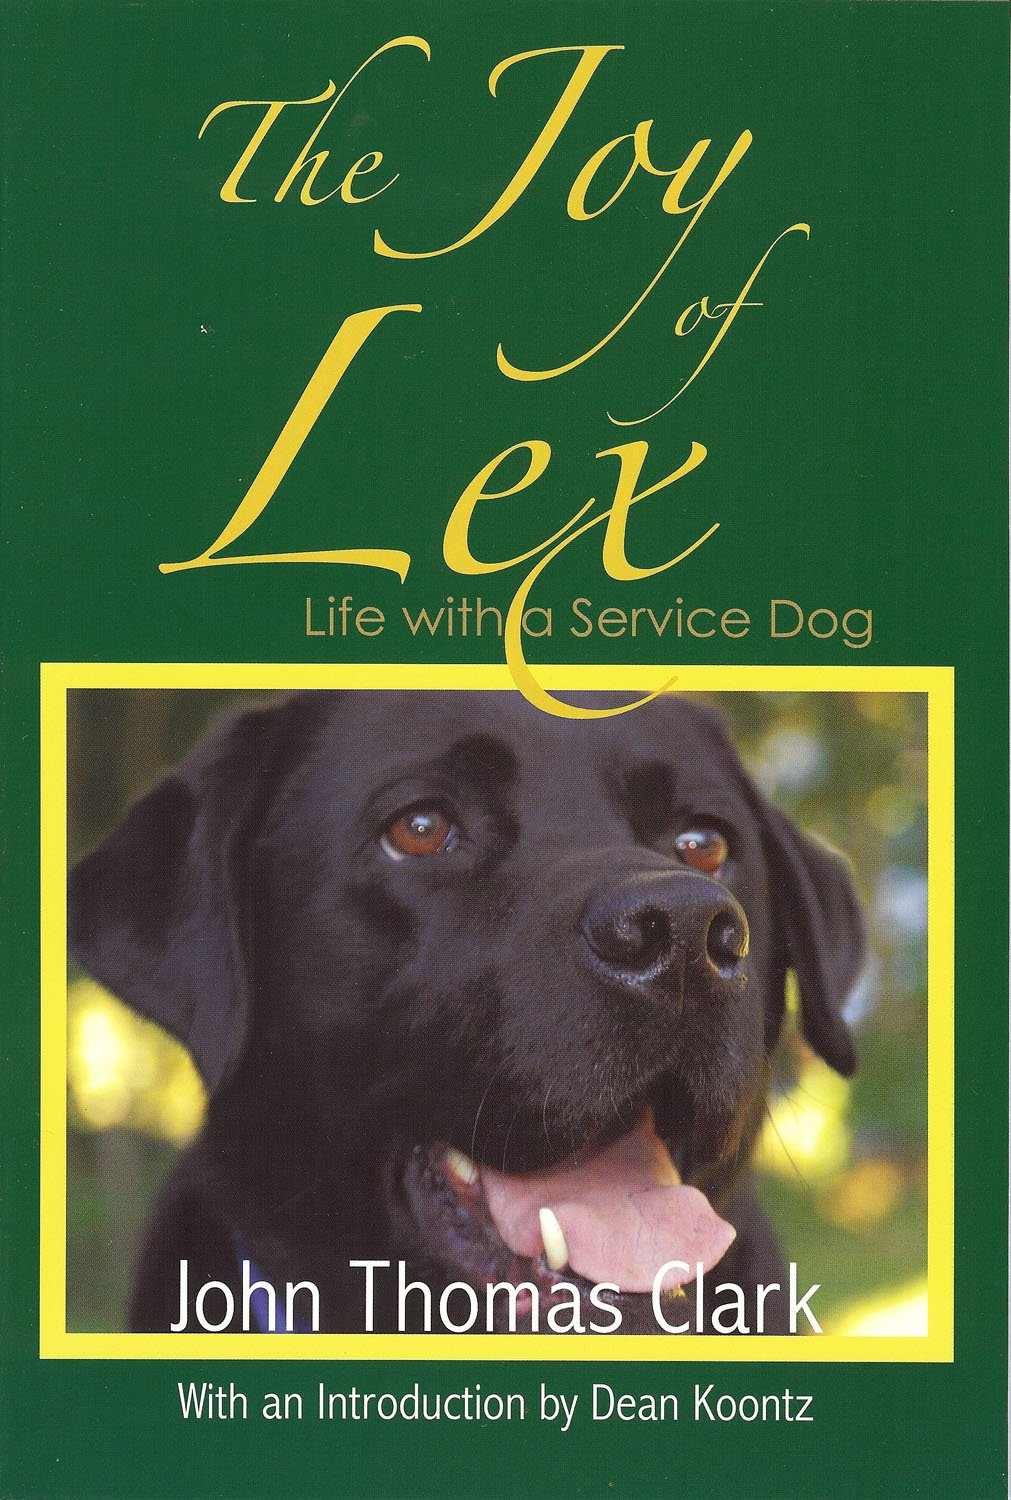 The Joy of Lex: Life with a Service Dog